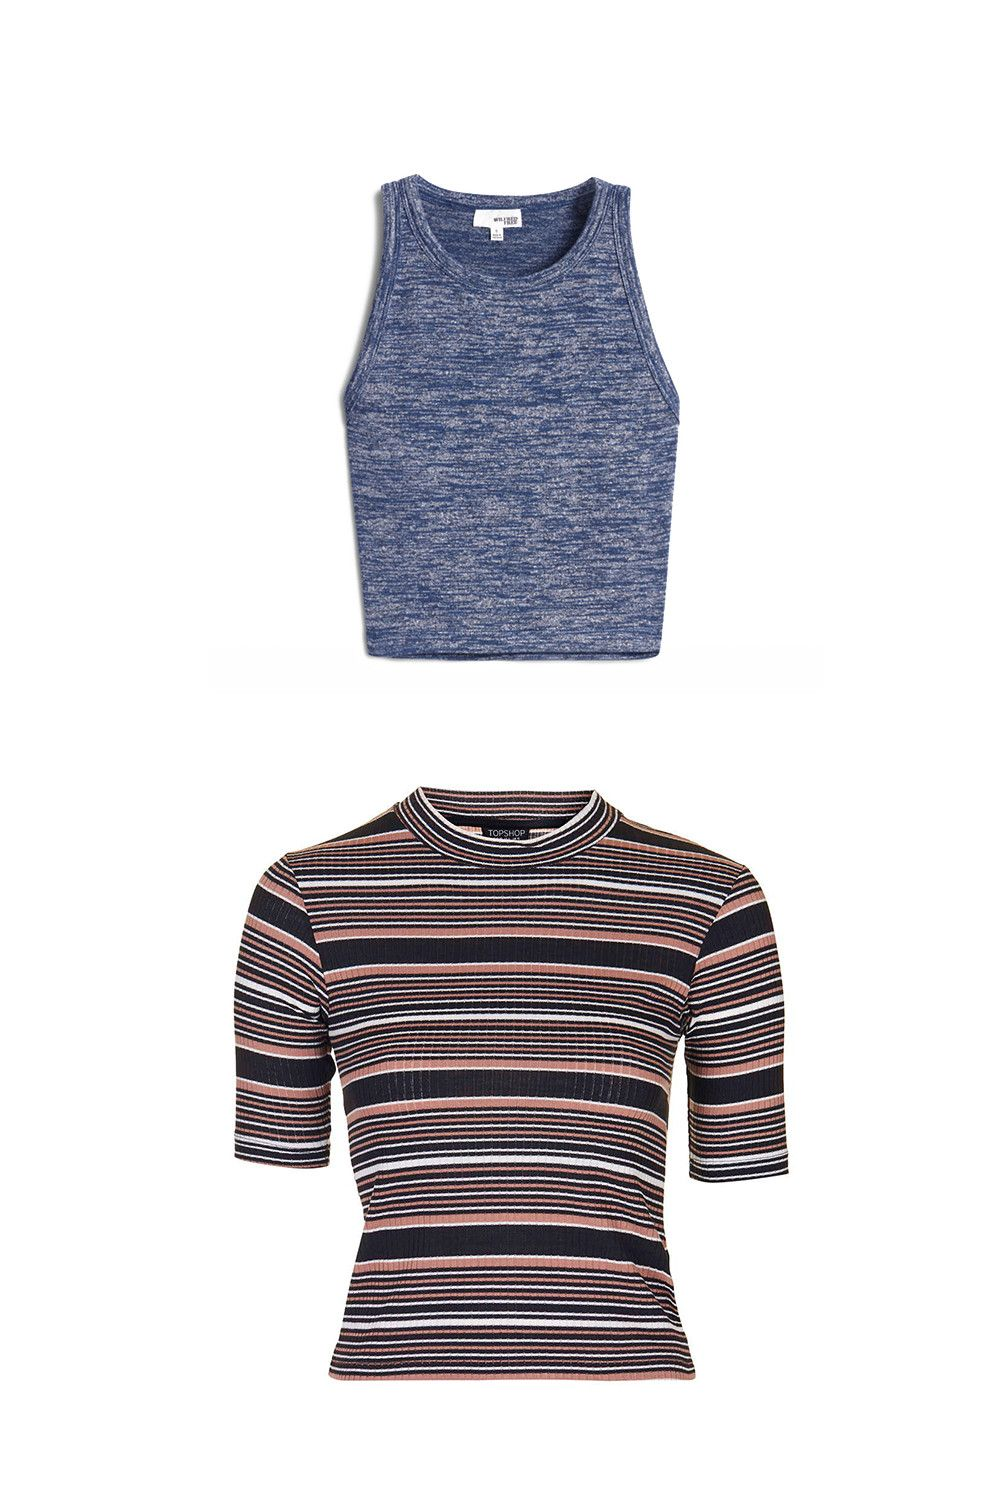 "<p>Think baseball T-shirt: The tank is the body, and the sweater provides the sleeves. The necklines and prints are up to you. </p><p>Aritzia tank top, $30, <a href=""http://us.aritzia.com/product/winberg-tank/50131.html?dwvar_50131_color=11241"">aritzia.com</a>; Topshop striped top, #35, <a href=""http://bit.ly/1me3EoS"">topshop.com</a>.</p>"